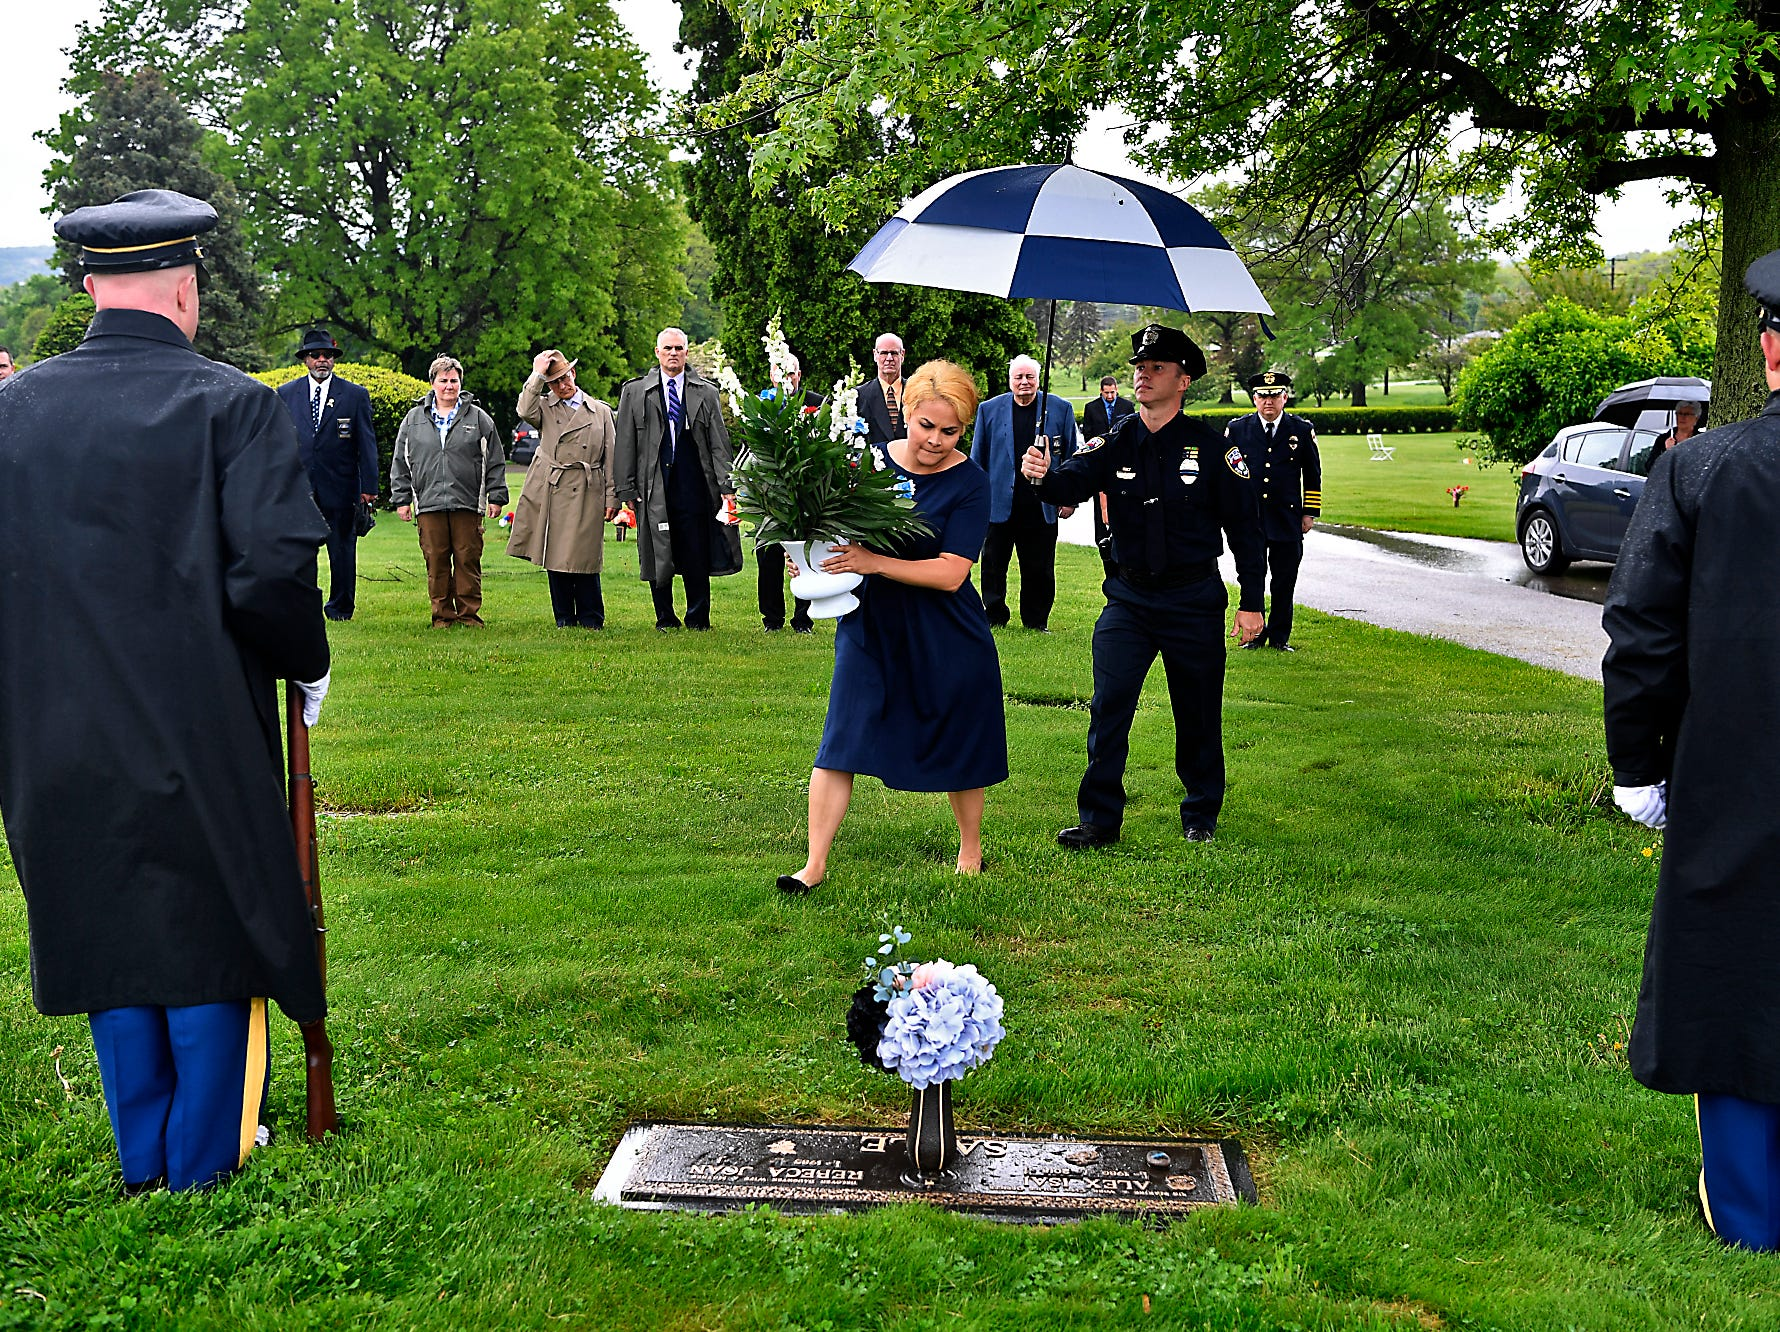 Rebeca Sable places flowers on the grave site of her husband Officer Alex Sable the Fraternal Order of Police (FOP) Lodge 15 honor their fallen during the annual memorial service, Sunday, May 5, 2019, at Prospect Hill Cemetery.John A. Pavoncello photo